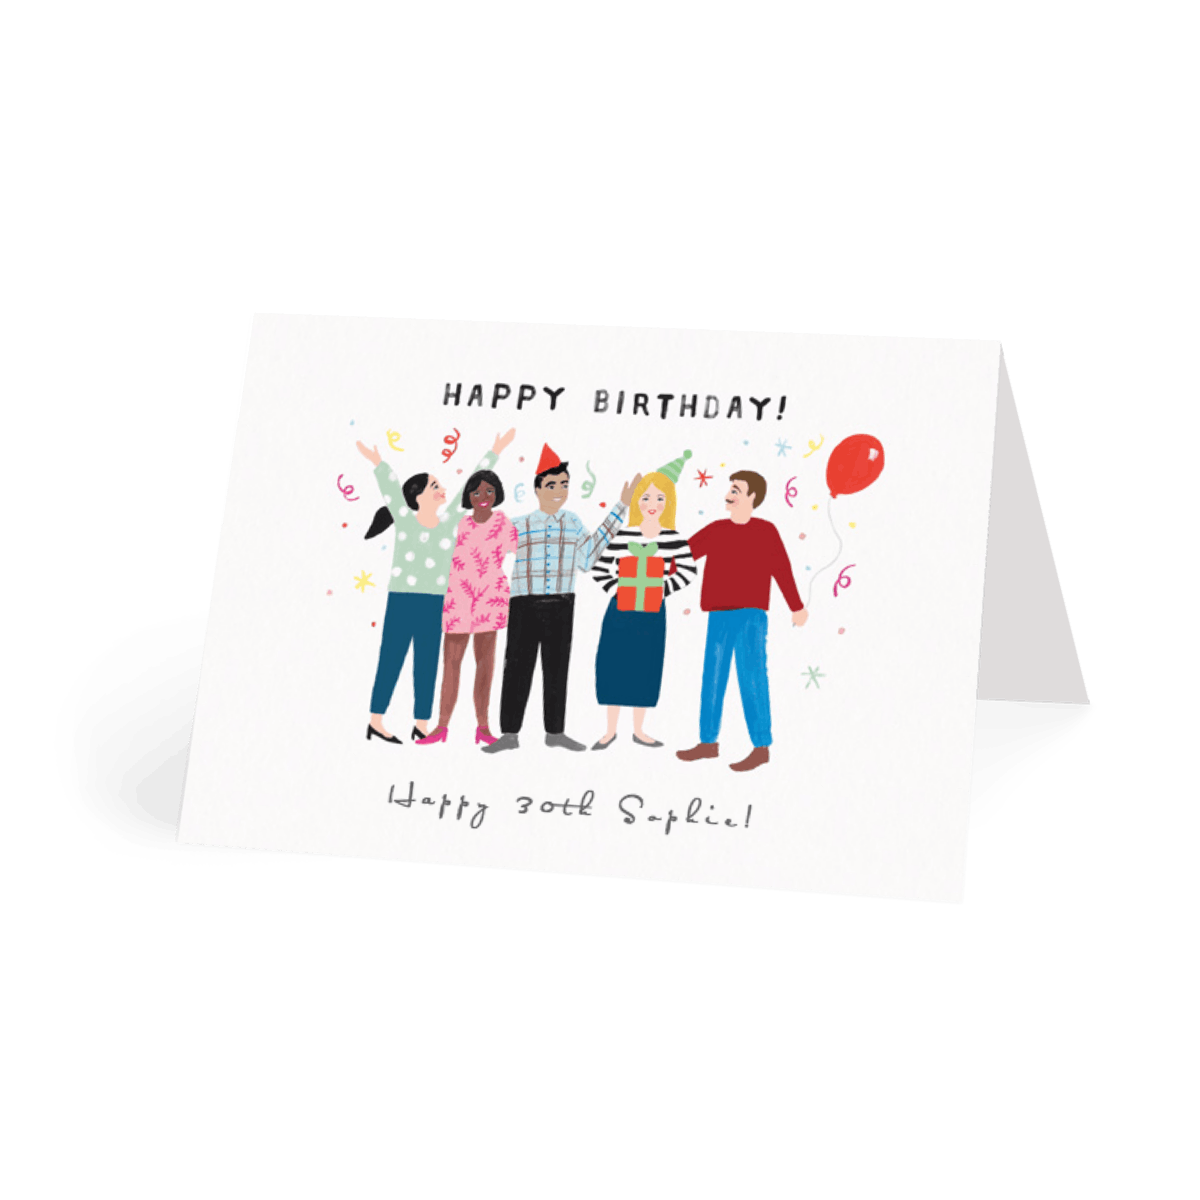 Https%3a%2f%2fwww.papier.com%2fproduct image%2f11249%2f14%2fbirthday party 2860 avant 1474650259.png?ixlib=rb 1.1